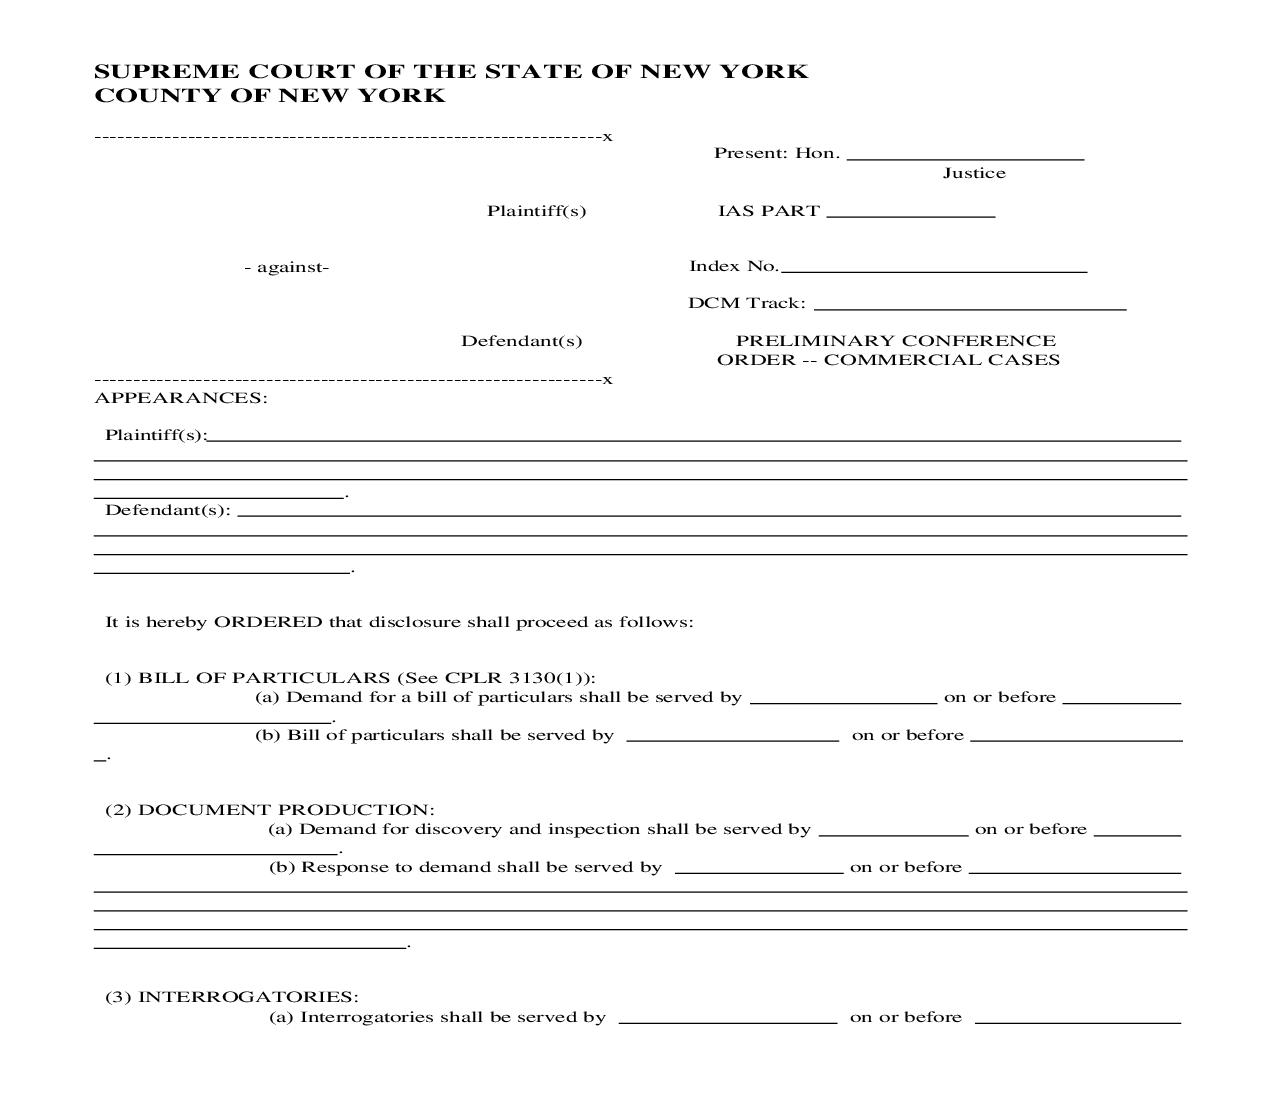 Preliminary Conference Order Commercial Cases | Pdf Fpdf Doc Docx | New York